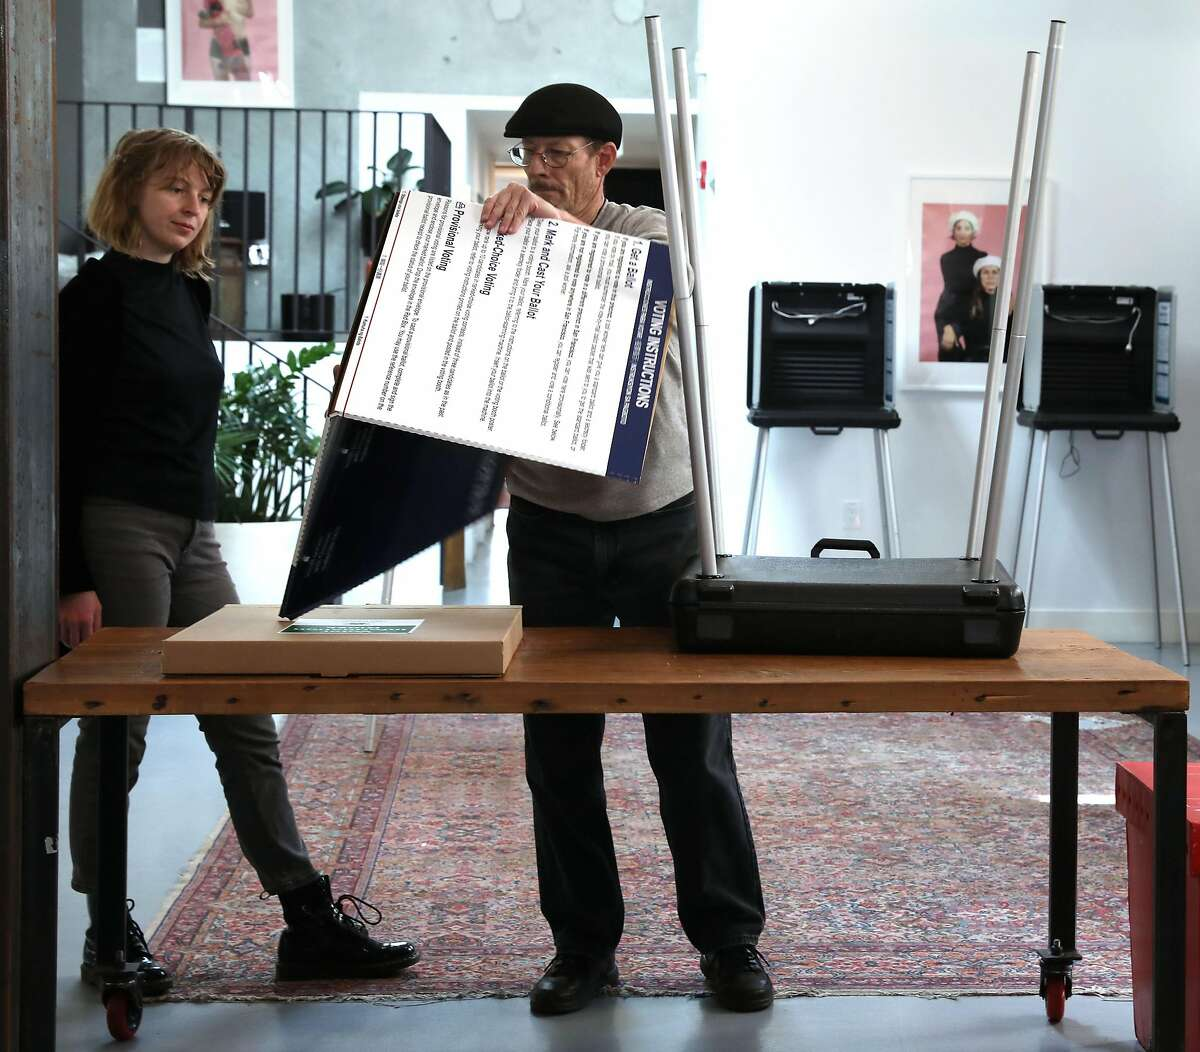 The Laundry manager Taylor Ovca (left) works with roving district support team supervisor Bill Delaney (middle) as he sets up a polling space at the coffee shop/gallery on Monday, March 2, 2020, in San Francisco, Calif.